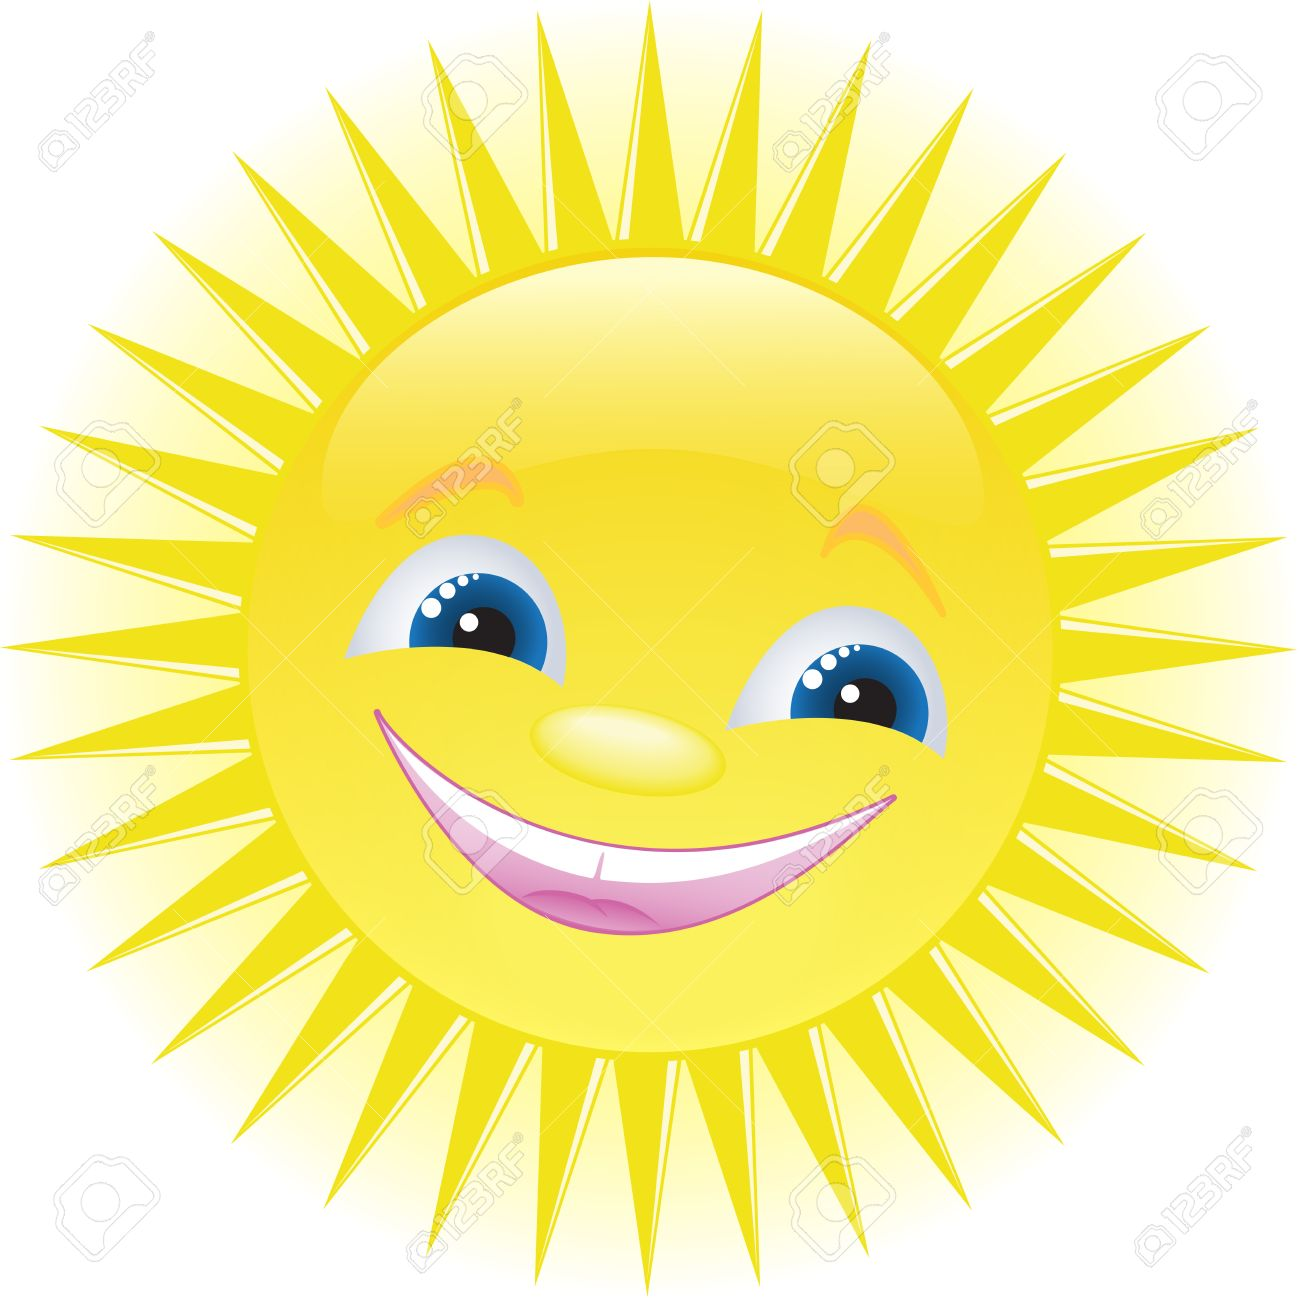 Smiling sun images - Funny Smiling Sun With Blue Eyes Free Cliparts Vectors